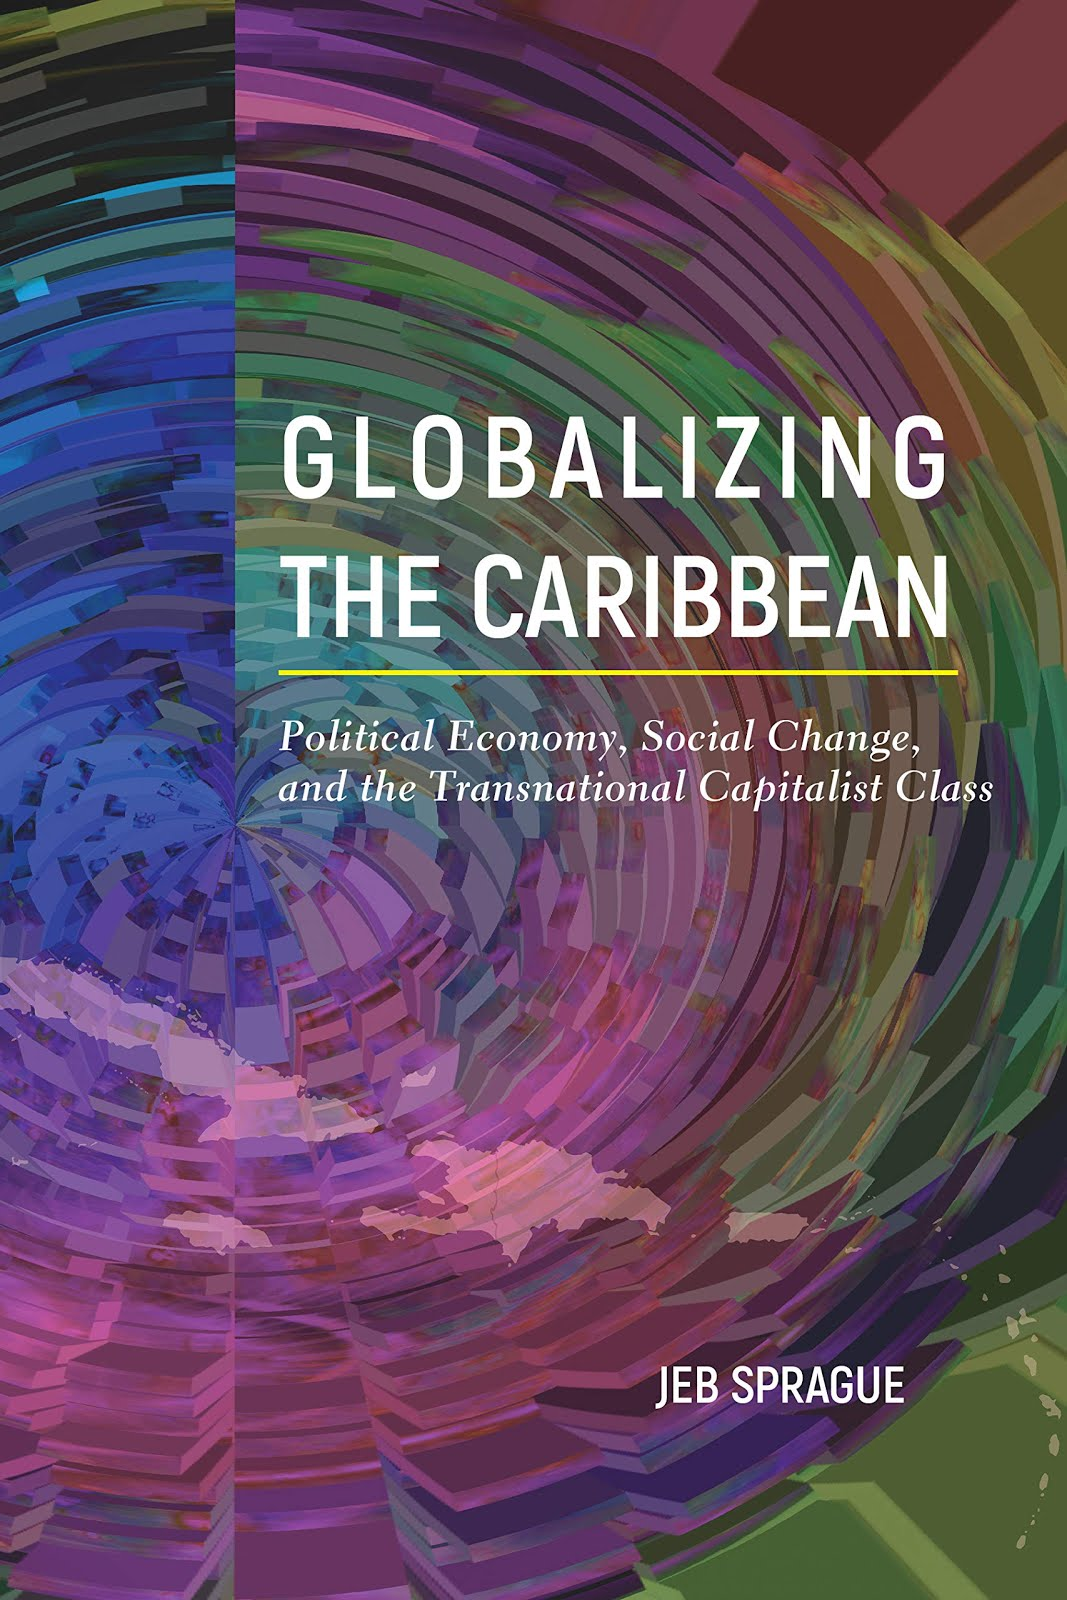 Globalizing the Caribbean: Political Economy, Social Change, and the Transnational Capitalist Class